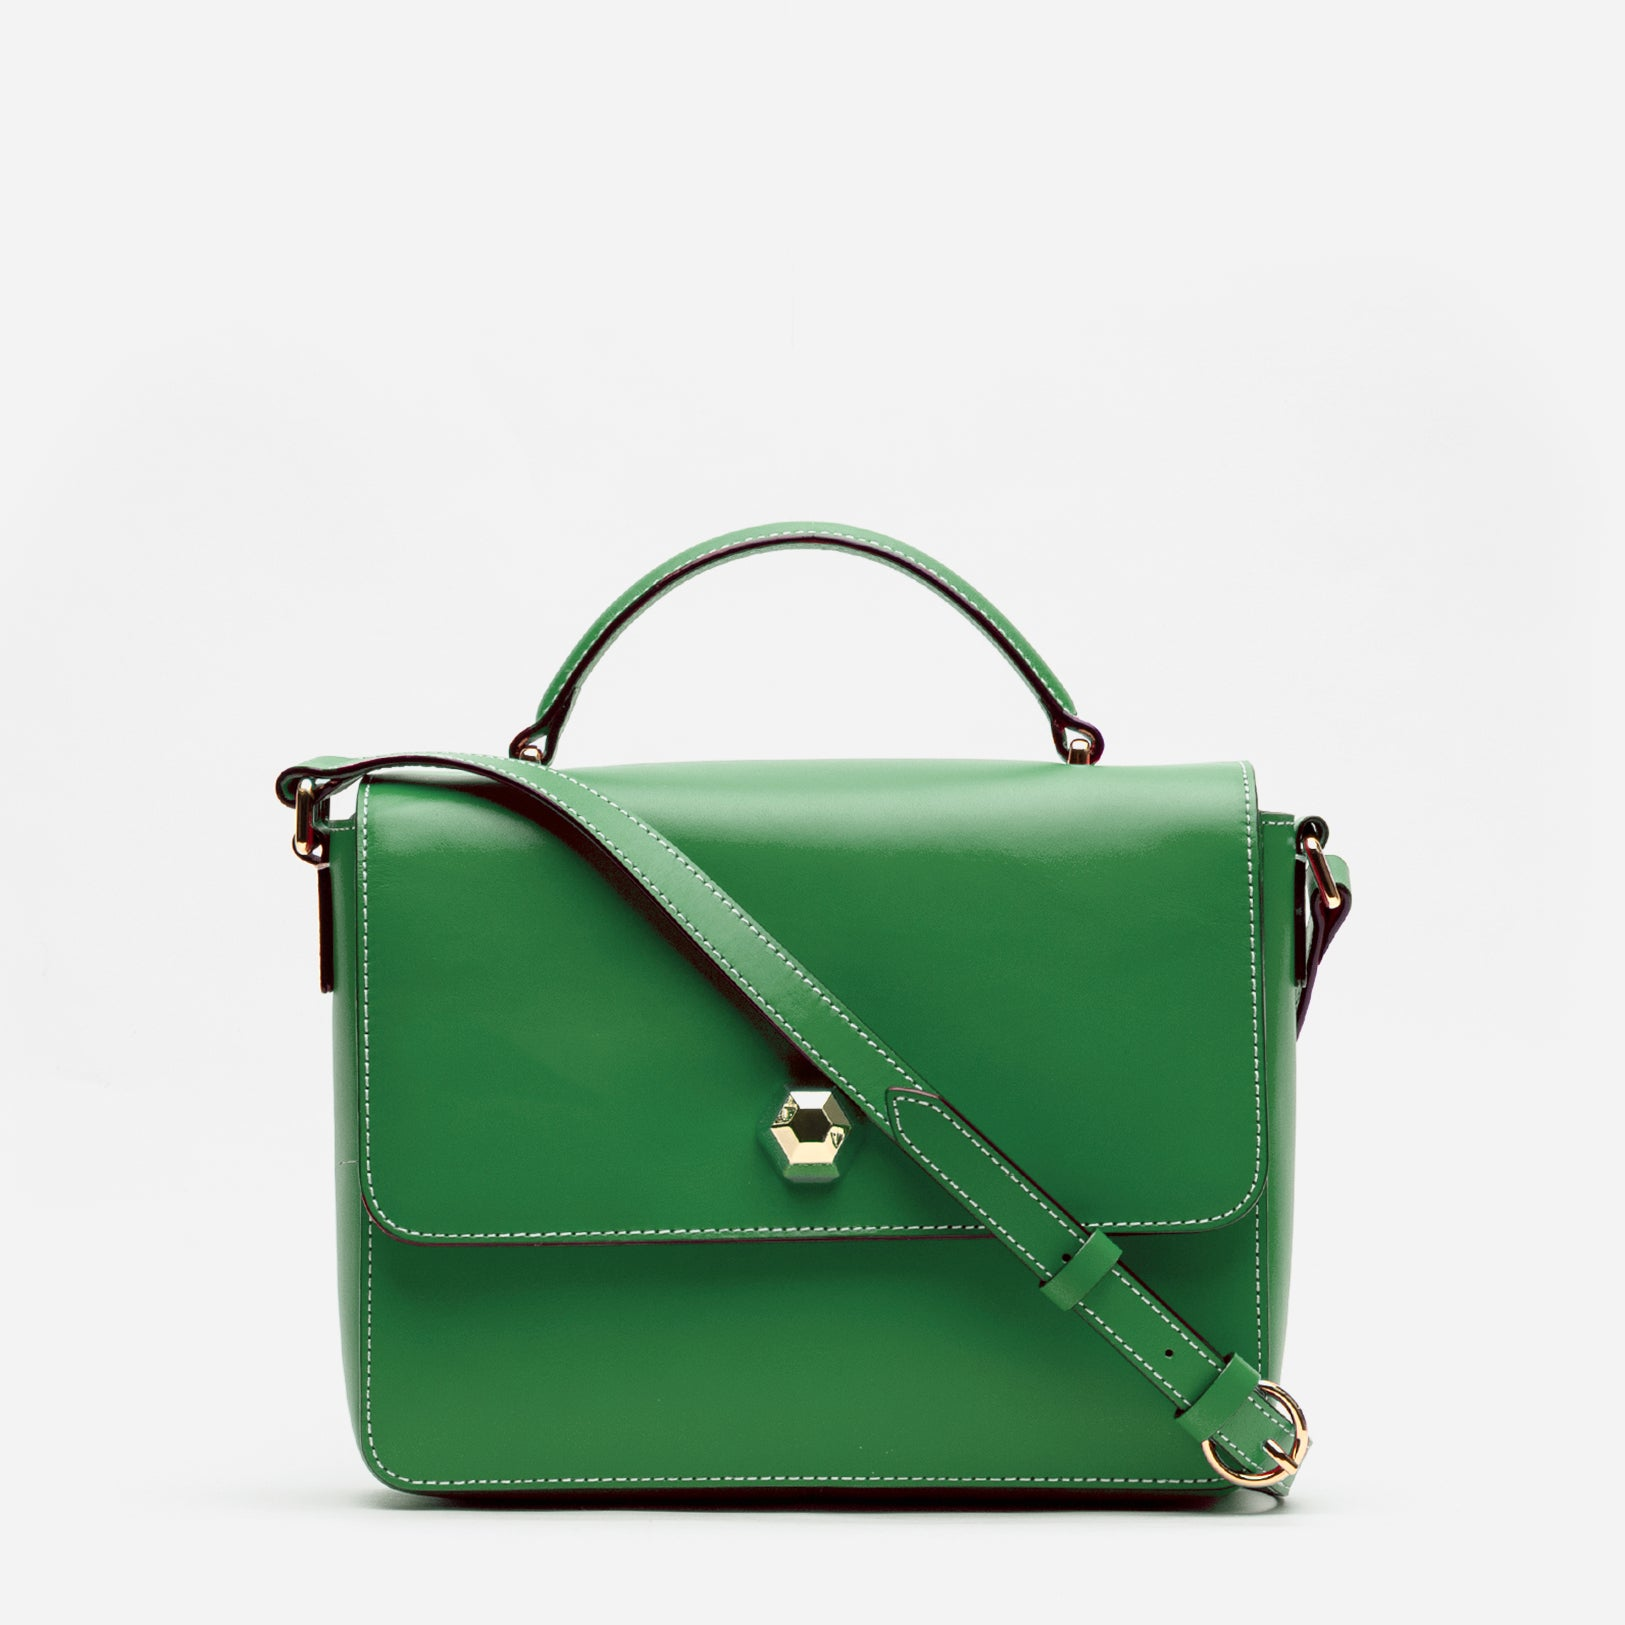 Midge Satchel Vachetta Leather Green Ray